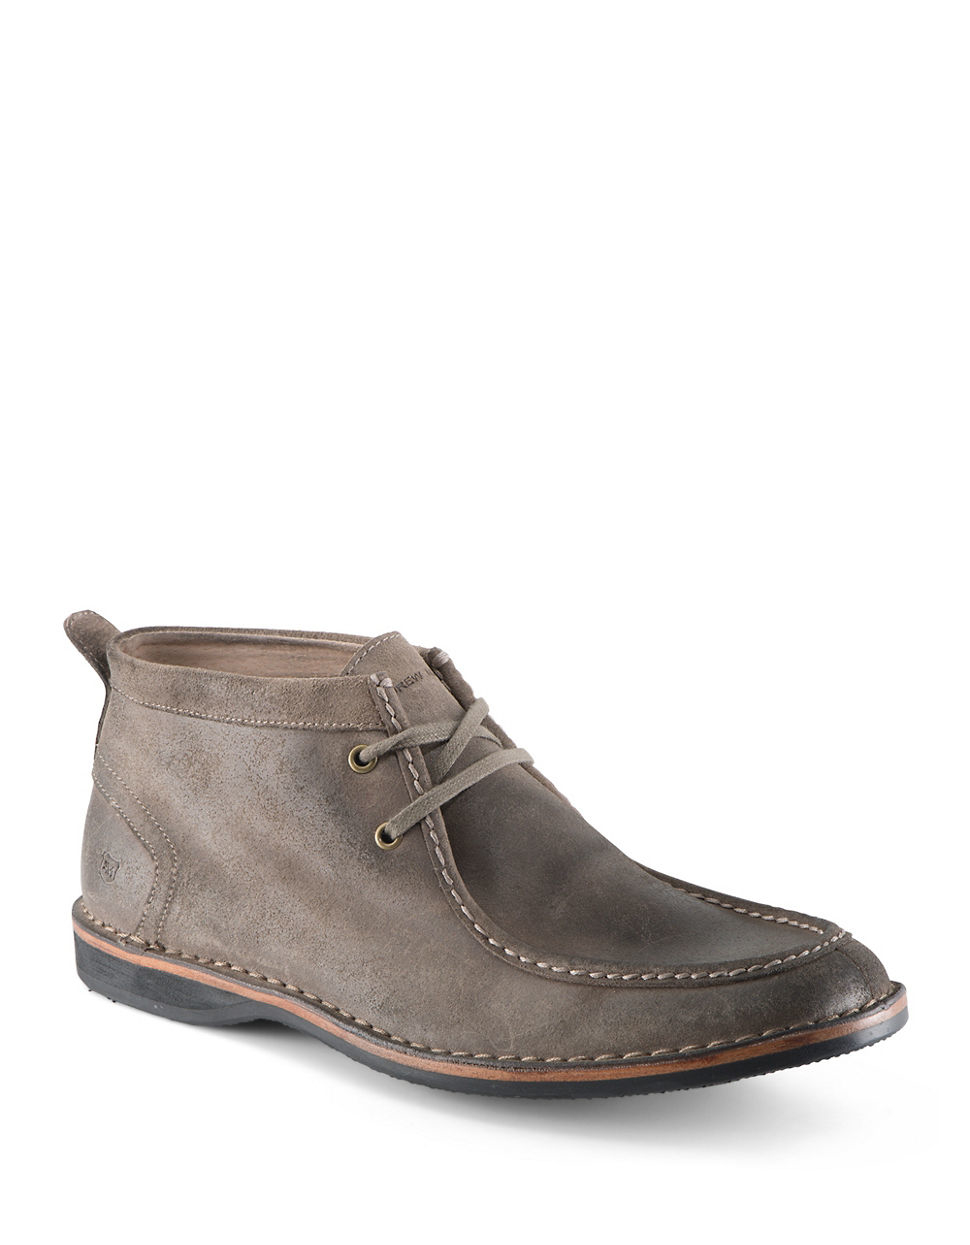 andrew marc dorchester suede moccasin boots in multicolor